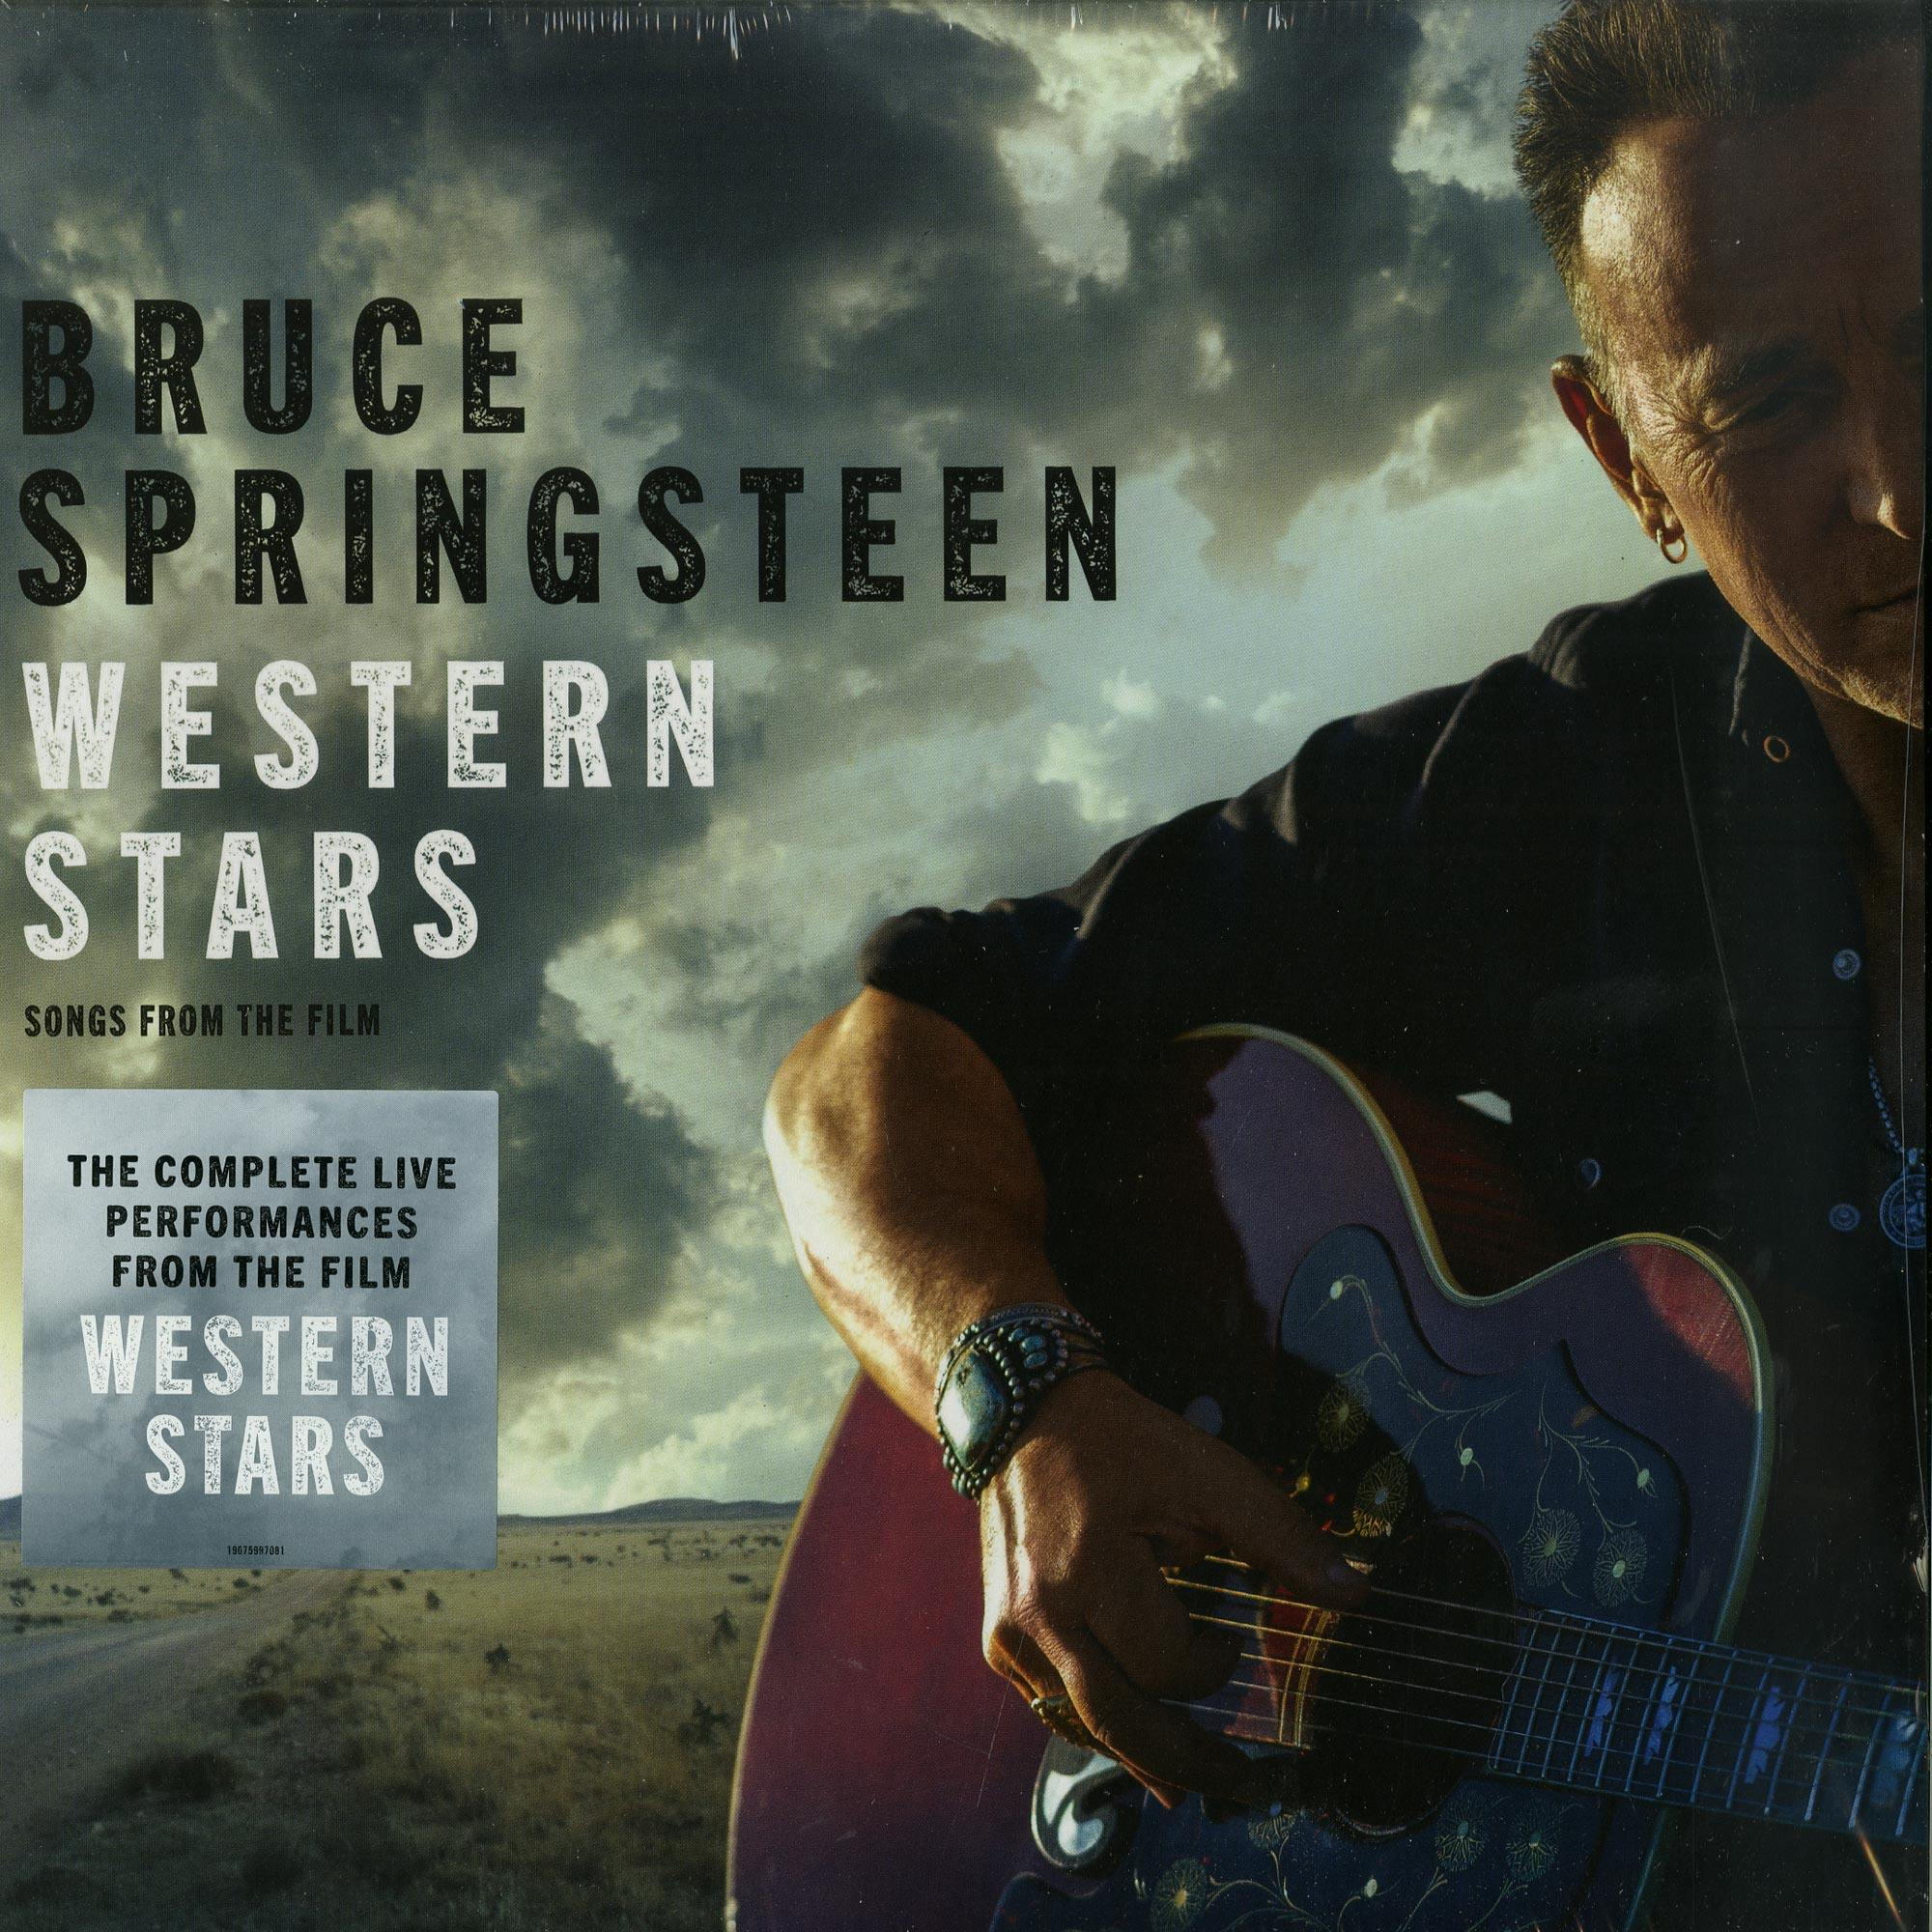 Bruce Springsteen - WESTERN STARS - SONGS FROM THE FILM